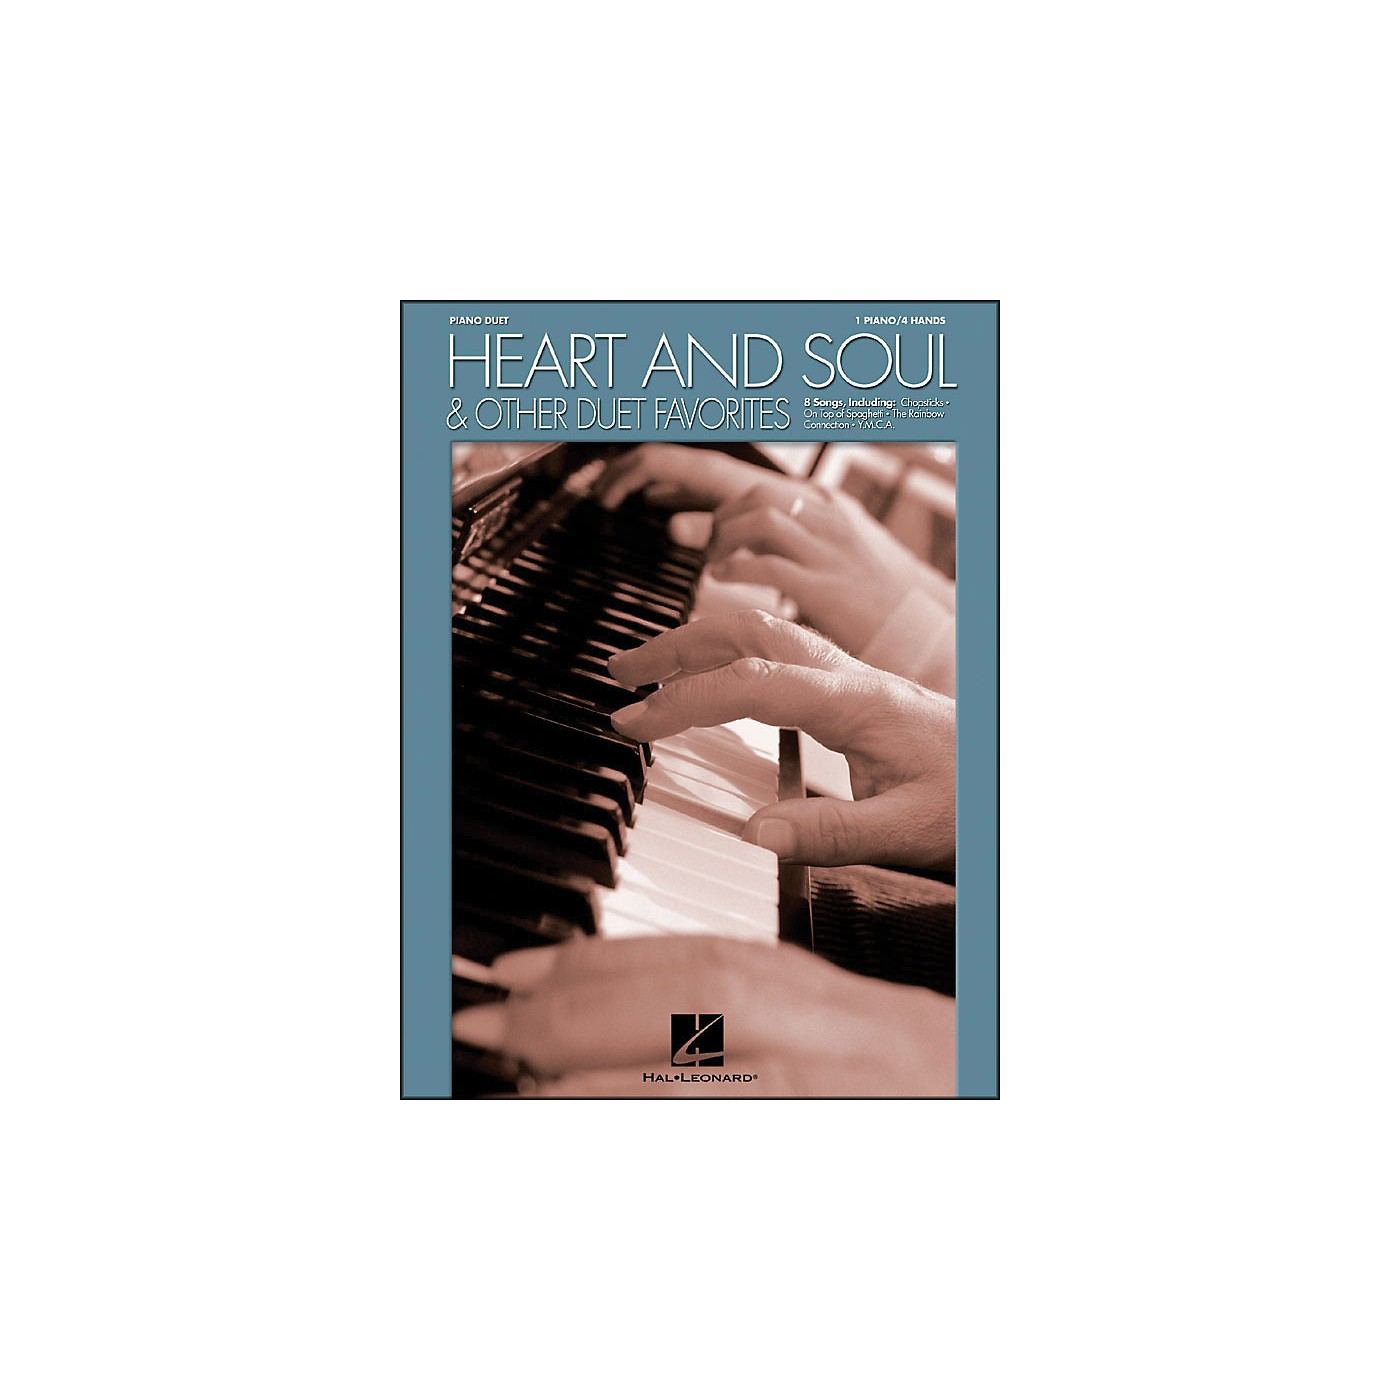 Hal Leonard Heart And Soul And Other Duet Favorites for Piano Duet 1 Piano, 4 Hands thumbnail